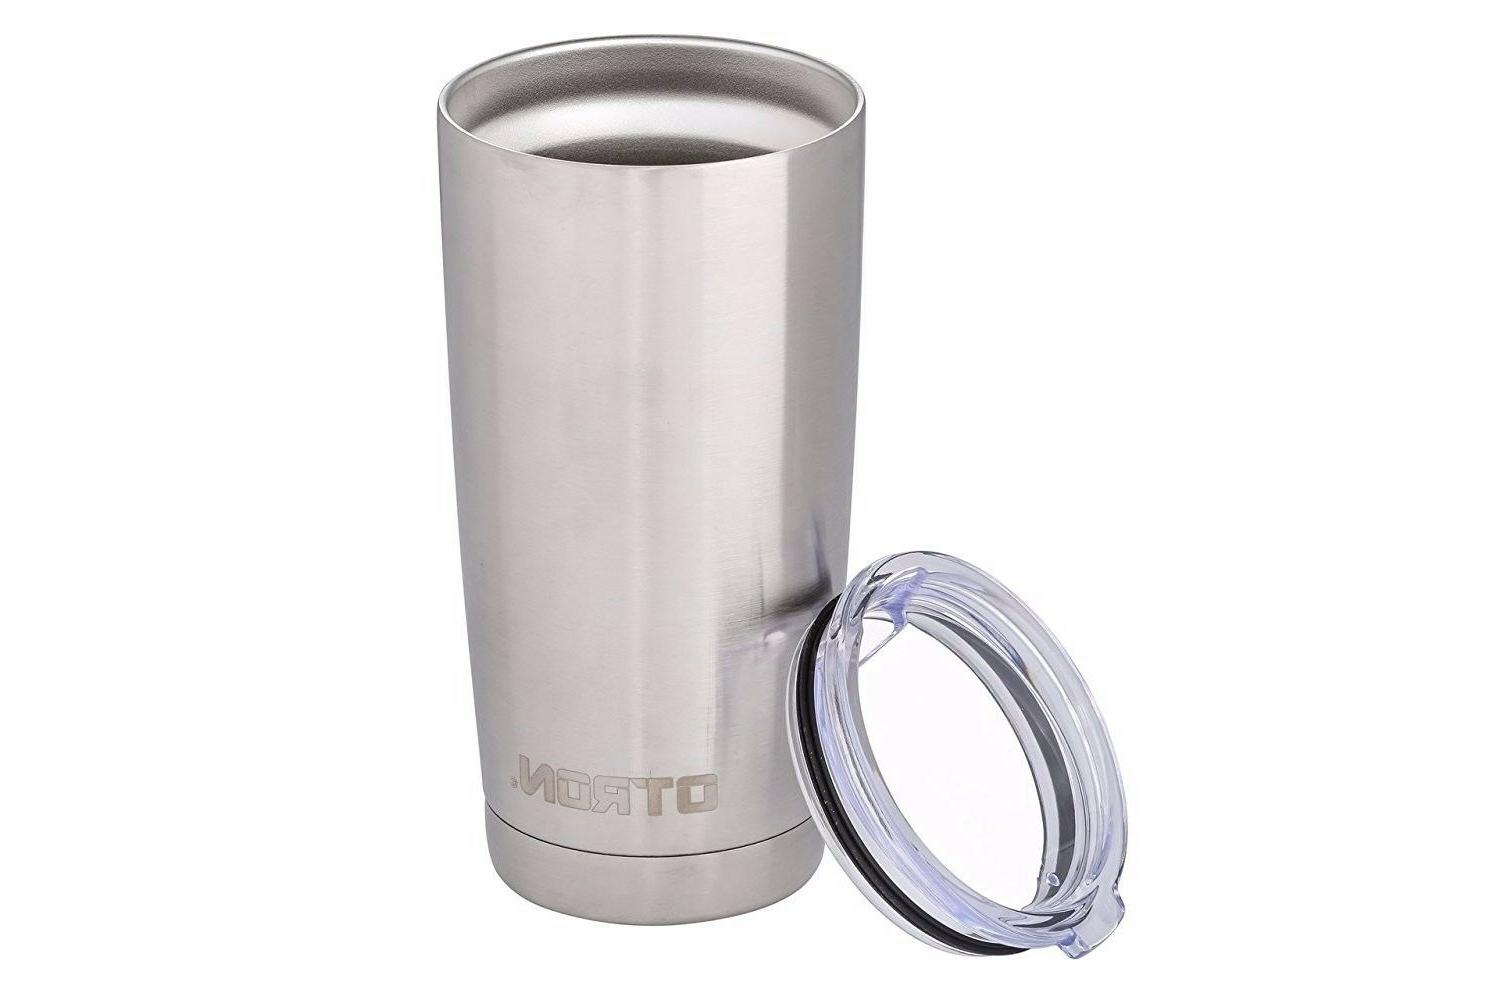 OTRON Tumbler Double Wall Travel Mug